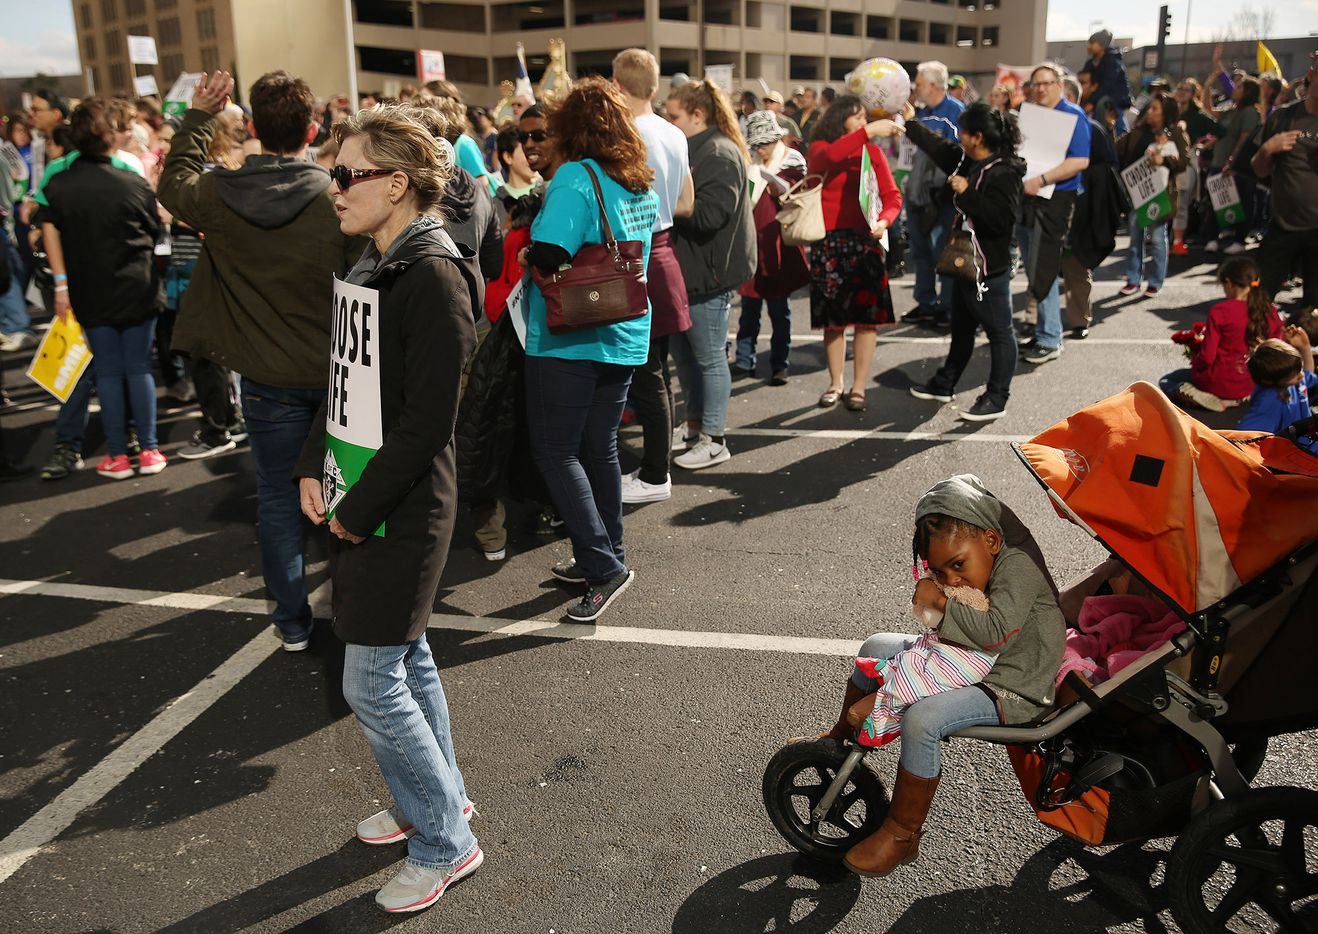 Abigail Burke, 3, of Arlington, Texas, sits in a stroller as anti-abortion activists speak in a parking lot adjacent to the Earle Cabell Federal Building at the rally portion of the North Texas March for Life in Dallas Saturday.